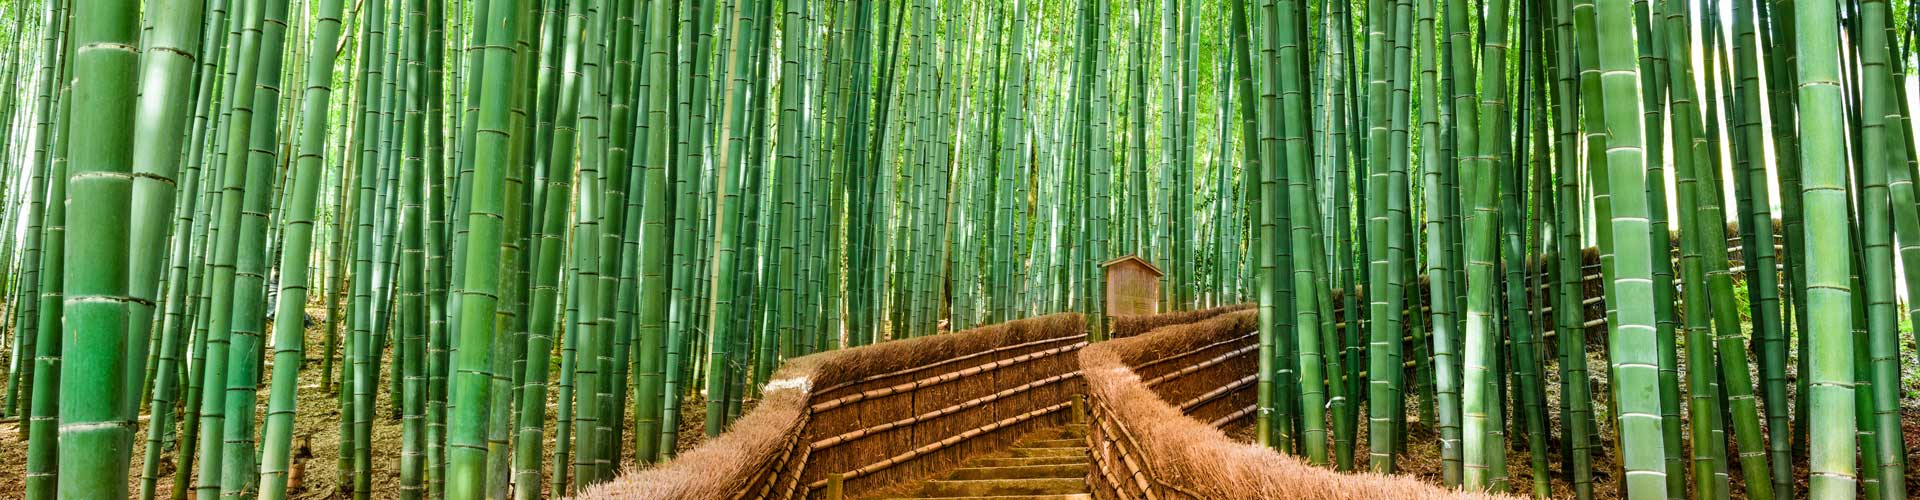 Bamboo - is a raw material of natural origin, has long been used by man in everyday life. More than two centuries ago it was used for the construction of houses, bridges, boats, home paraphernalia, musical instruments. In eastern medicine, the plant was used as a sedative and cosmetic 88